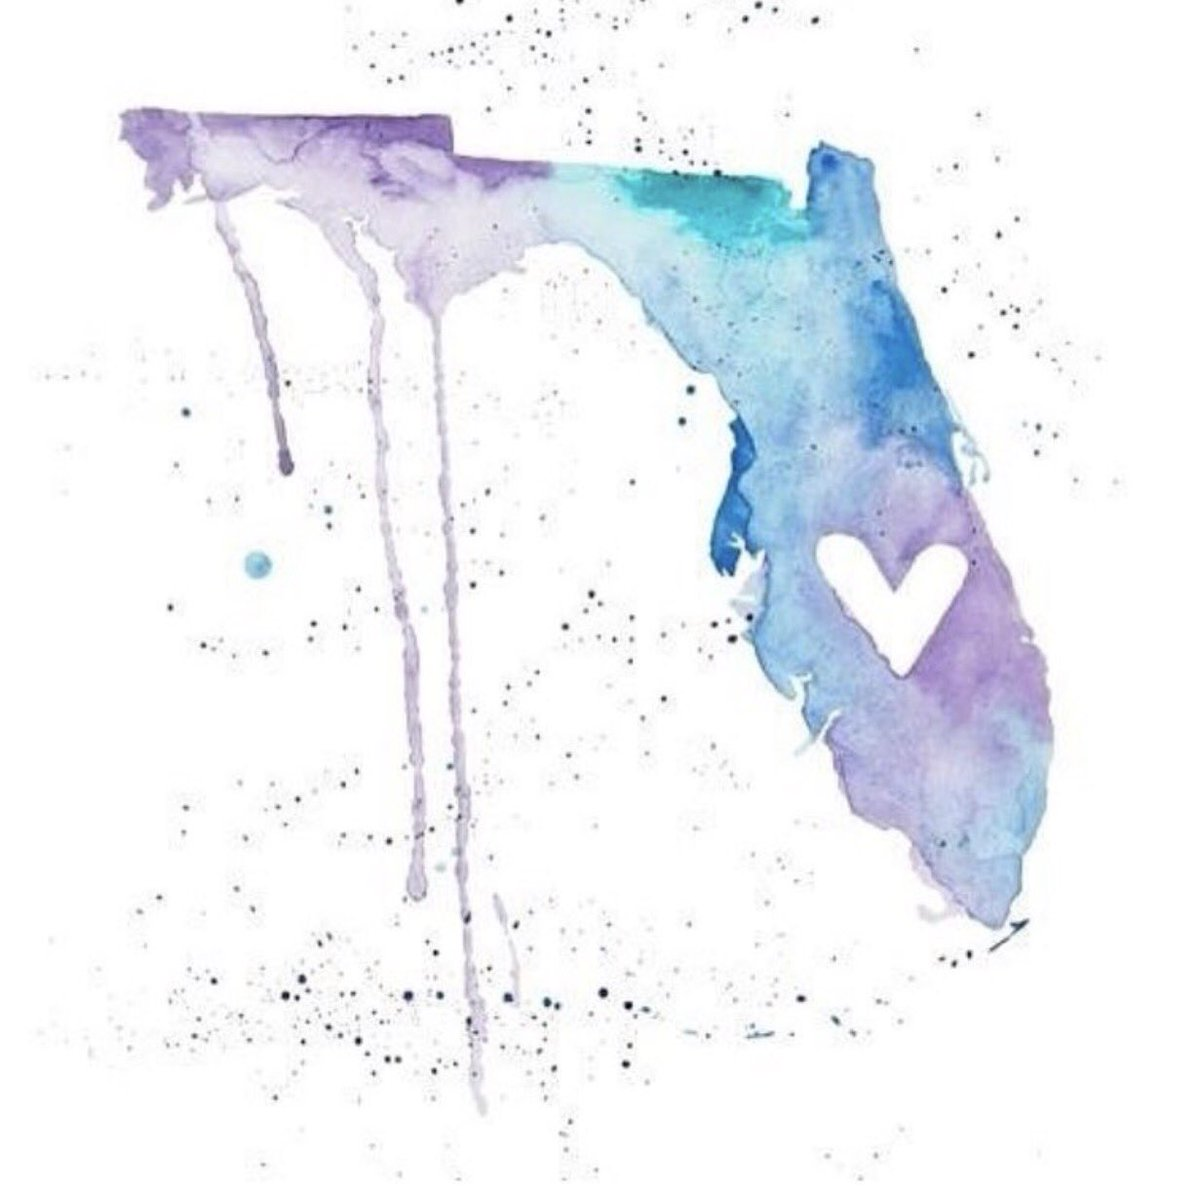 Our thoughts are with #Florida. #FloridaStrong #ImproveSociety #SocialActivism<br>http://pic.twitter.com/VKgnzxEq0f